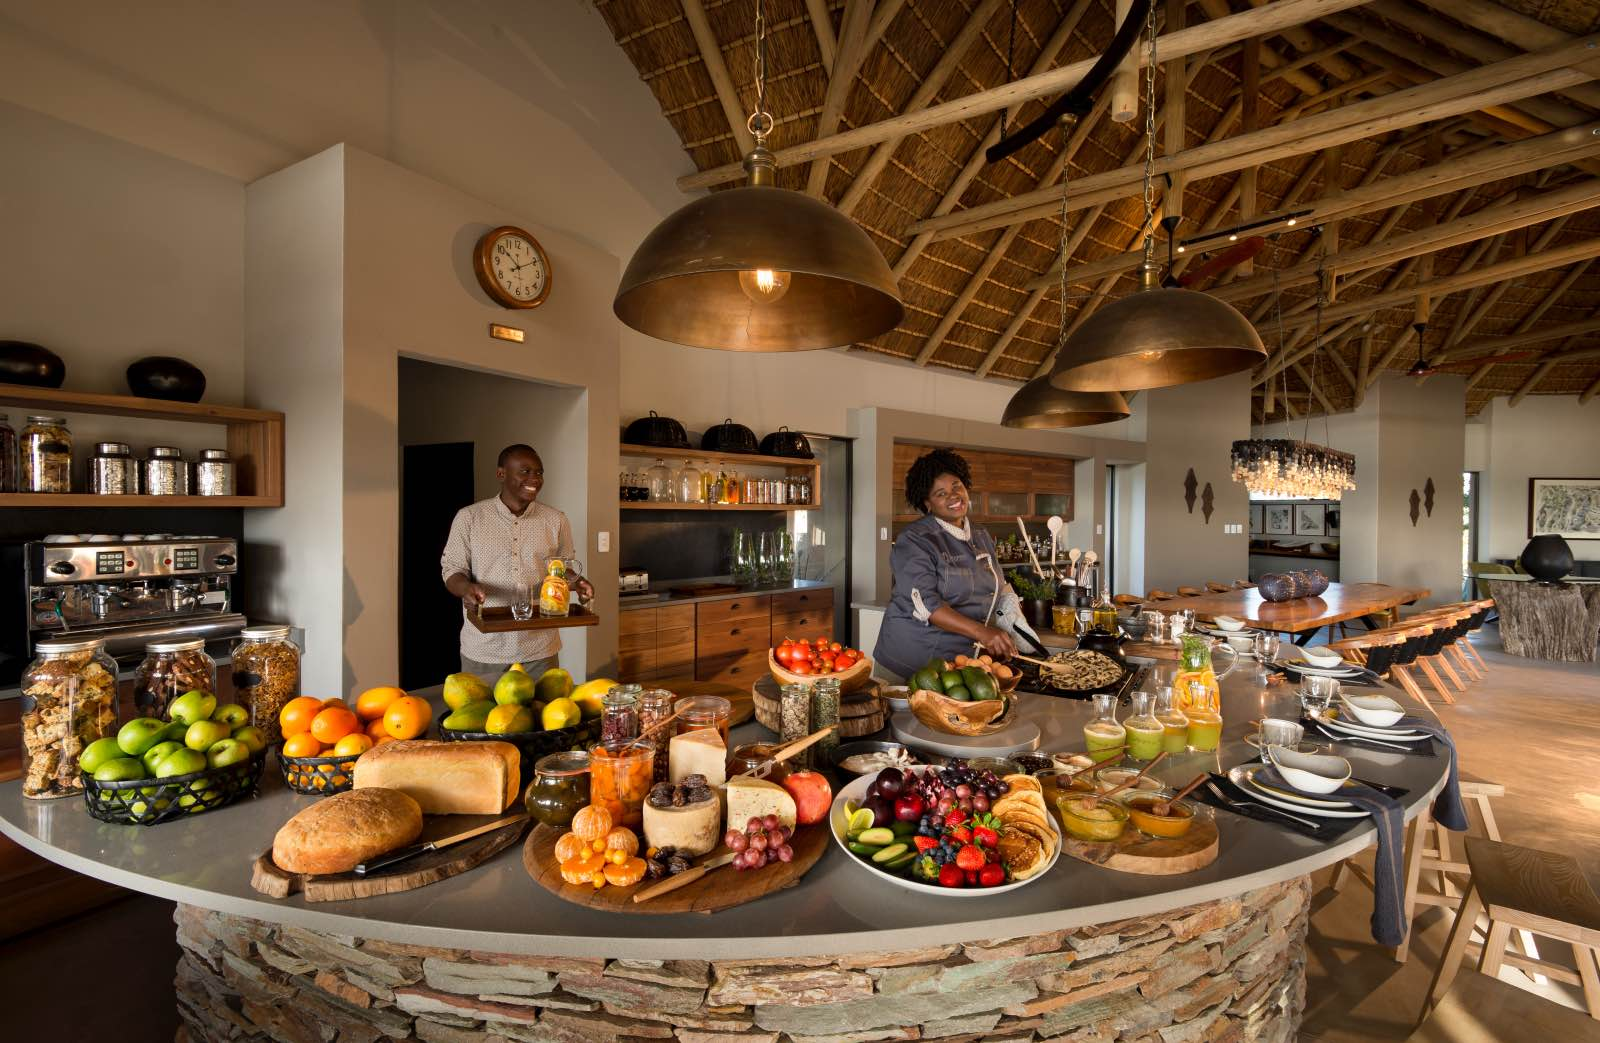 Interactive open-plan kitchen with plenty of fresh produce and chefs at work